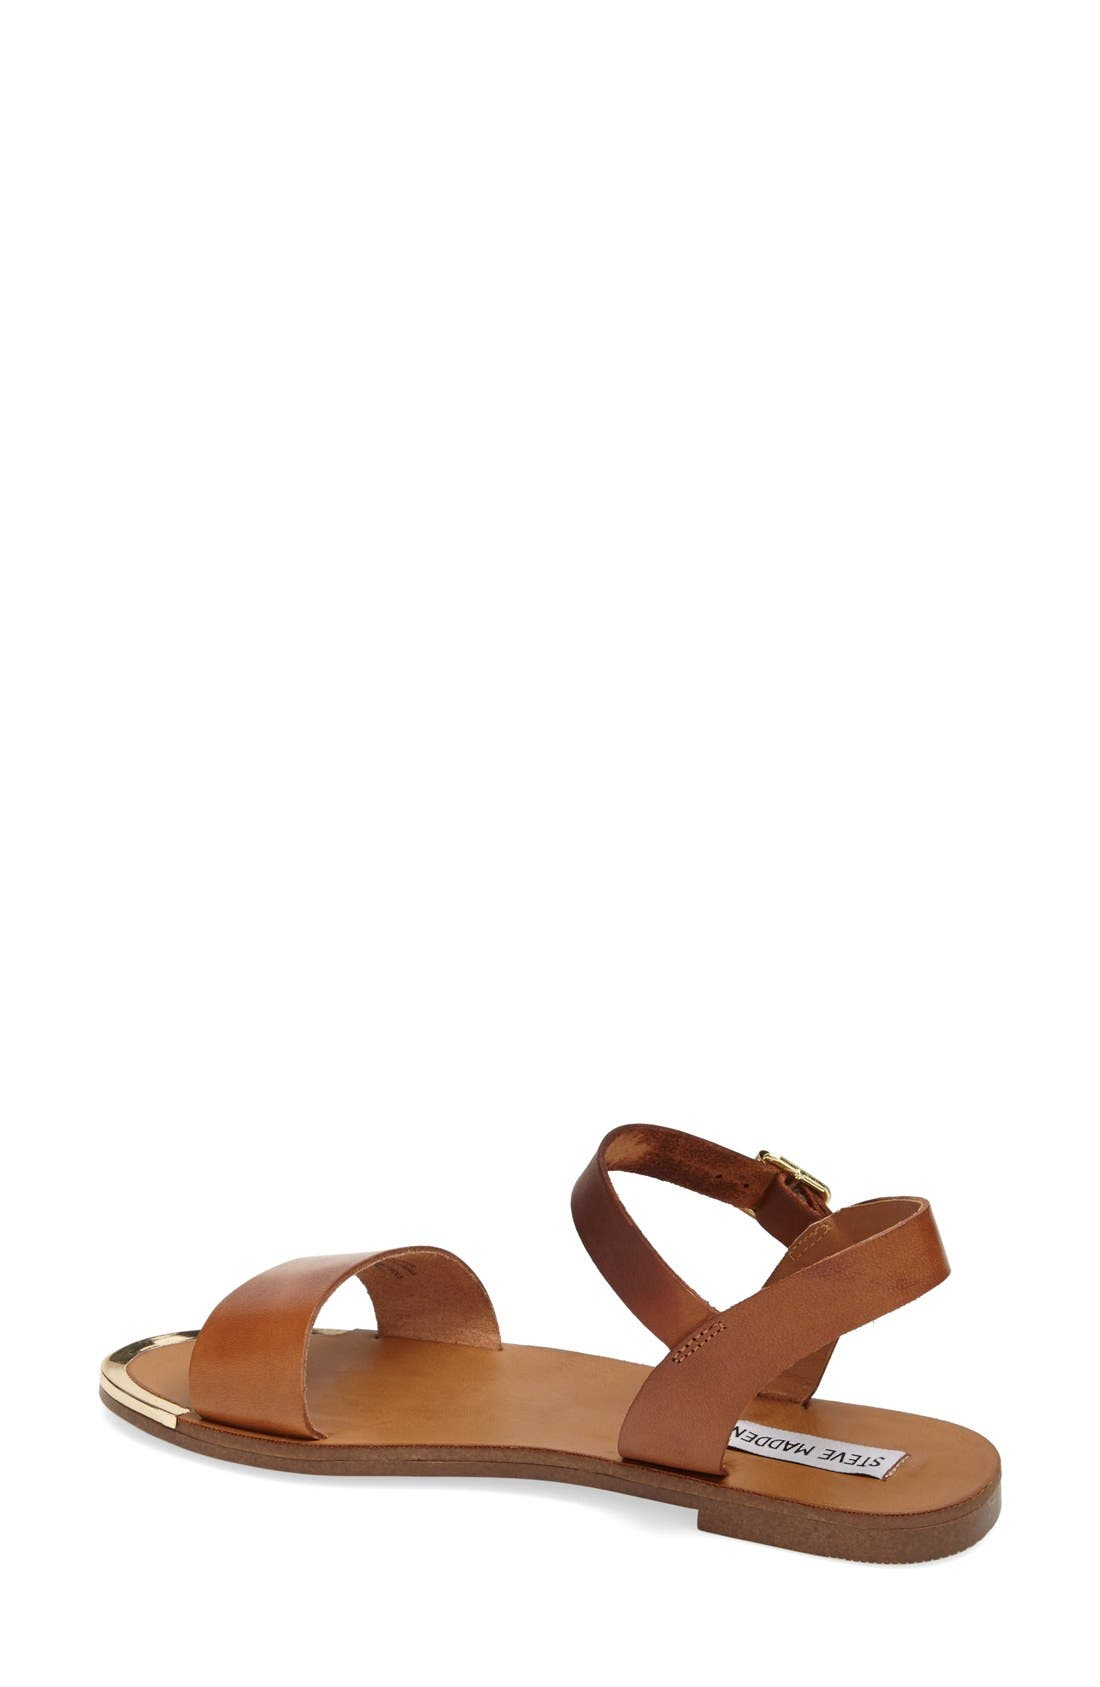 'Rillie' Two Strap Sandal,                             Alternate thumbnail 2, color,                             Tan Leather